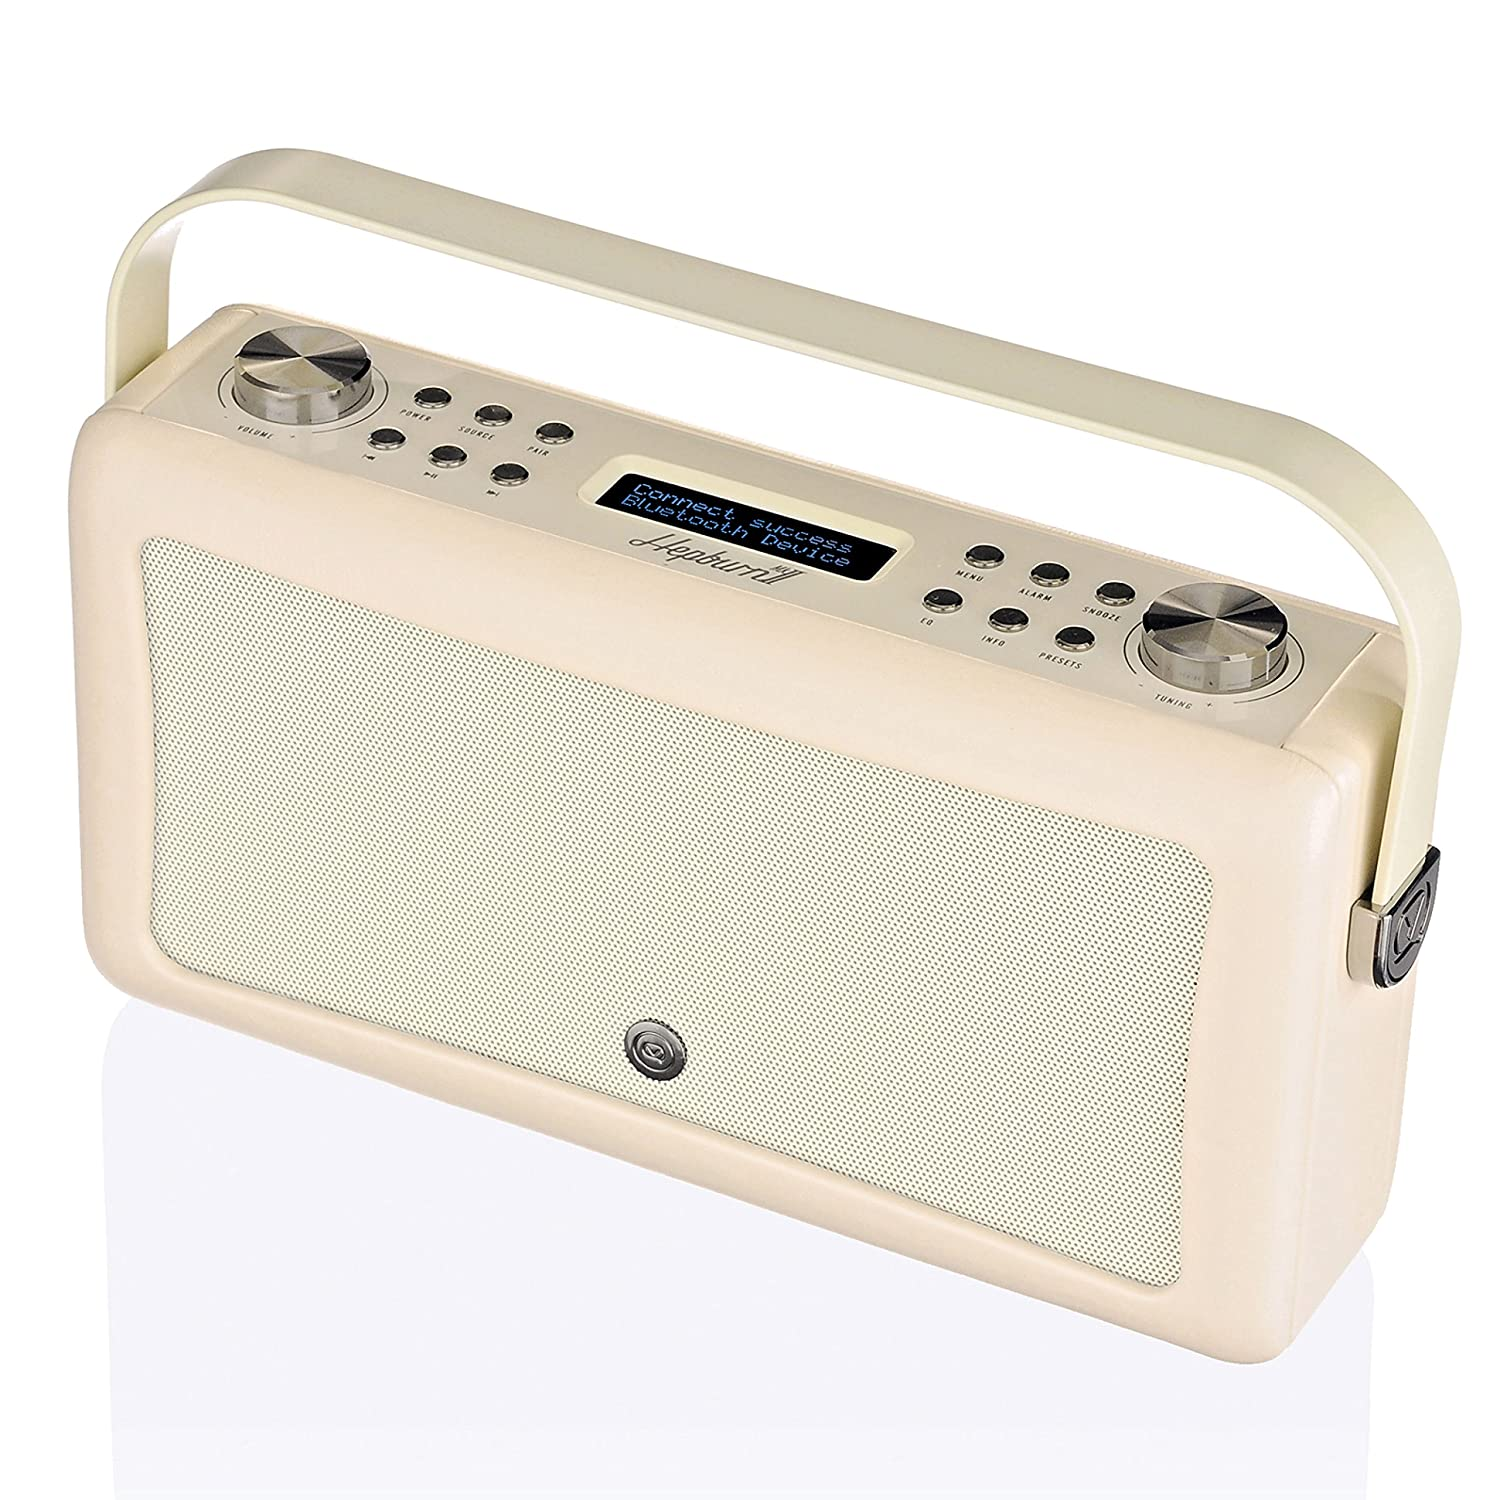 View Quest Hepburn MK II DAB + Radio con altavoz Bluetooth, Crema de color